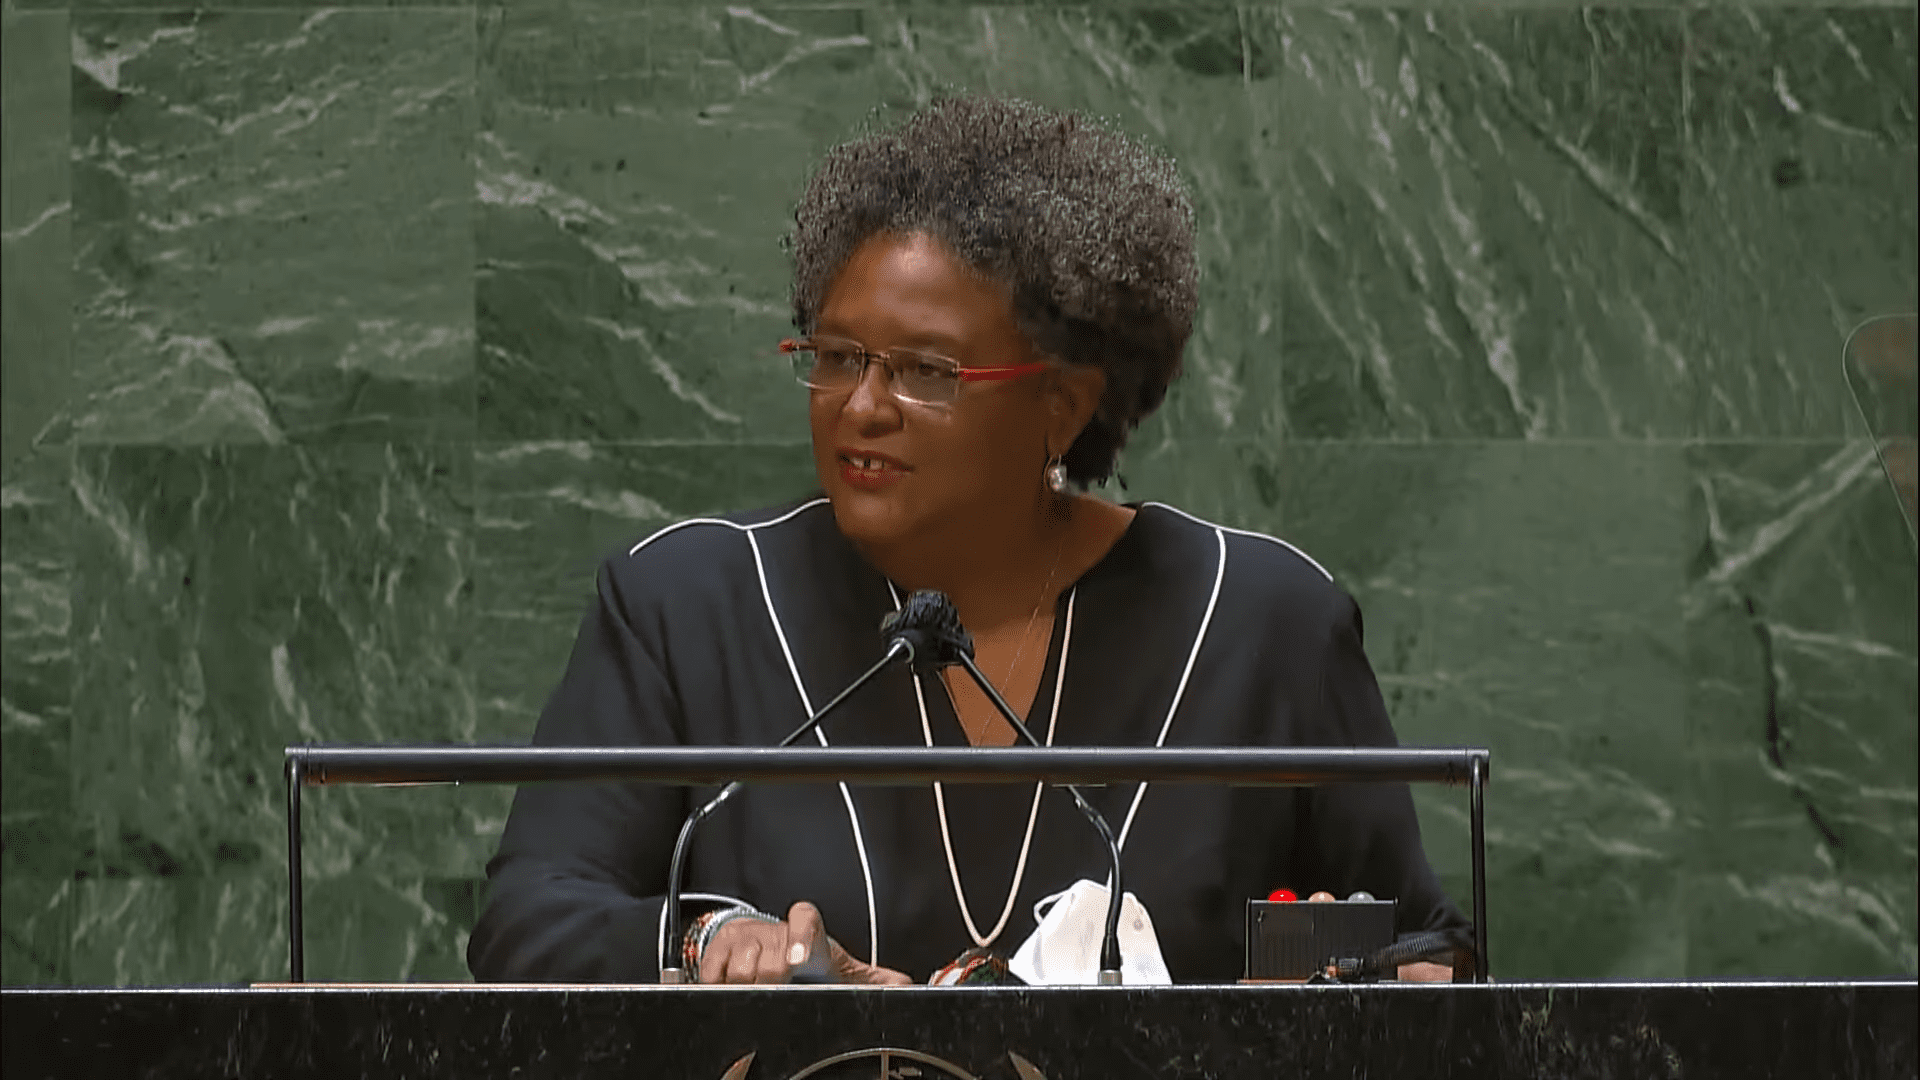 Prime Minister of Barbados, Mia Amor Mottley, addresses the general debate of the 76th General Assembly on Friday, 24 September 2021